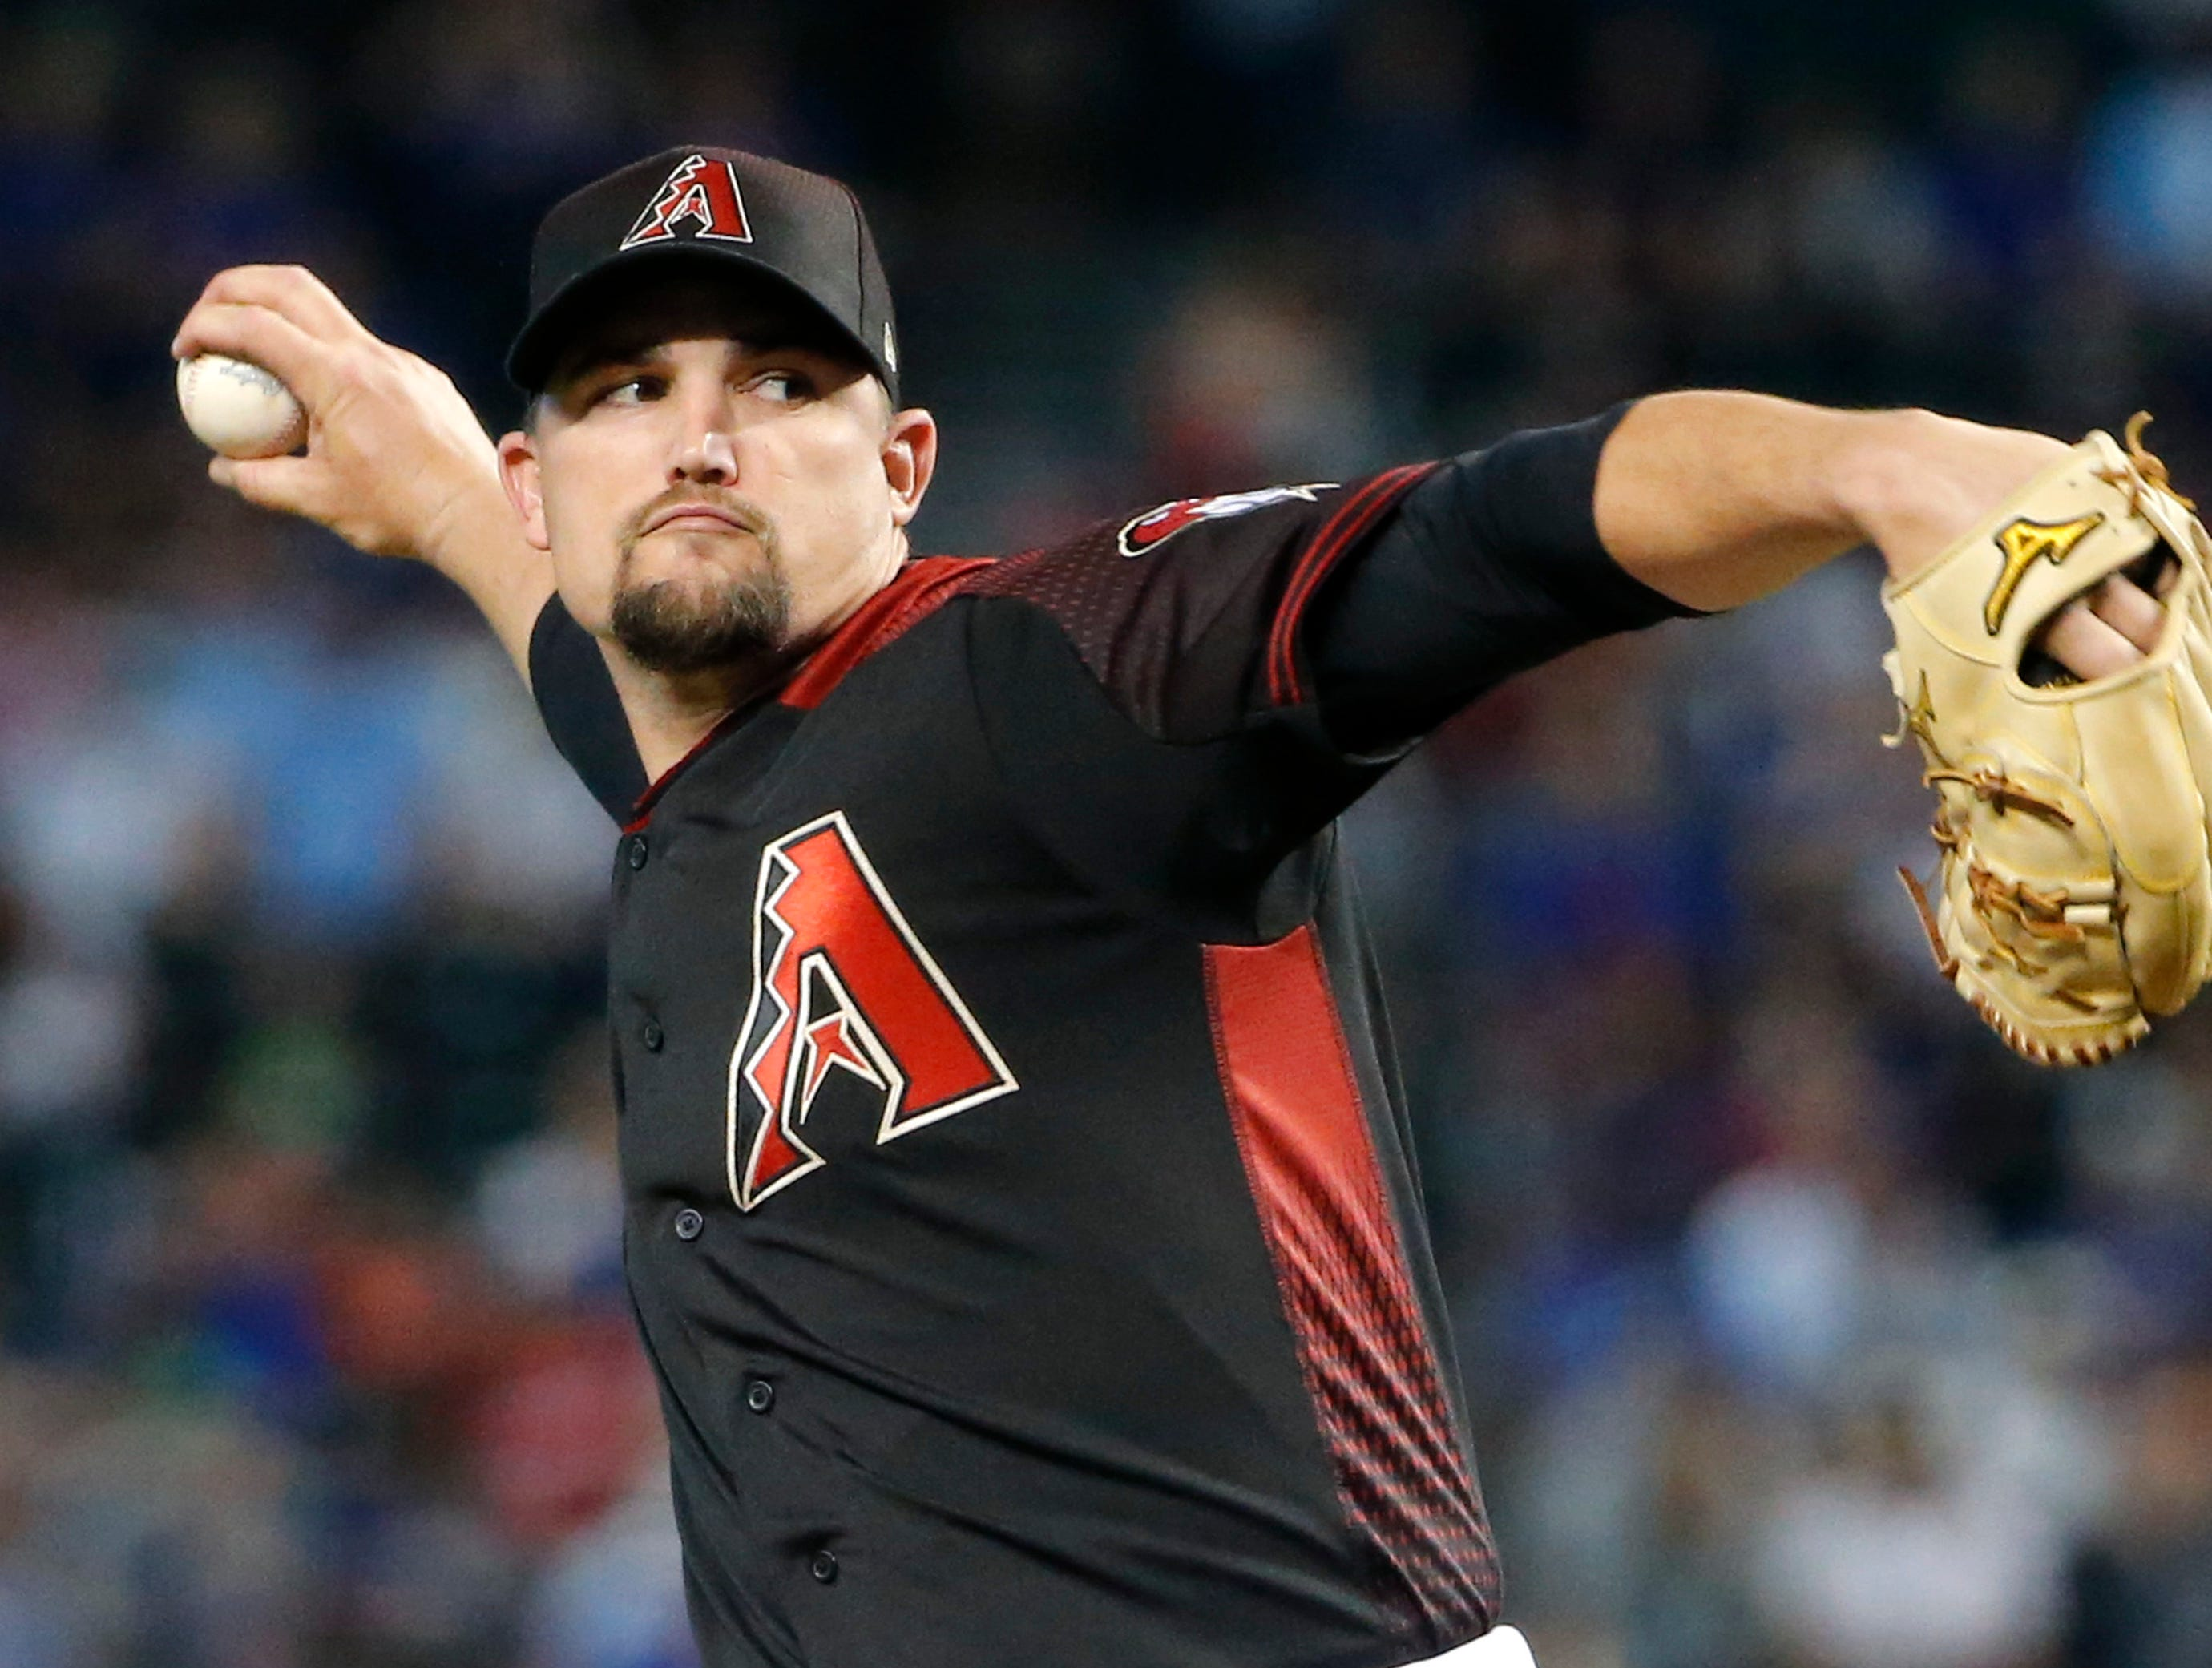 Arizona Diamondbacks starting pitcher Zack Godley throws against the Chicago Cubs during the first inning of a baseball game, Saturday, April 27, 2019, in Phoenix. (AP Photo/Ralph Freso)